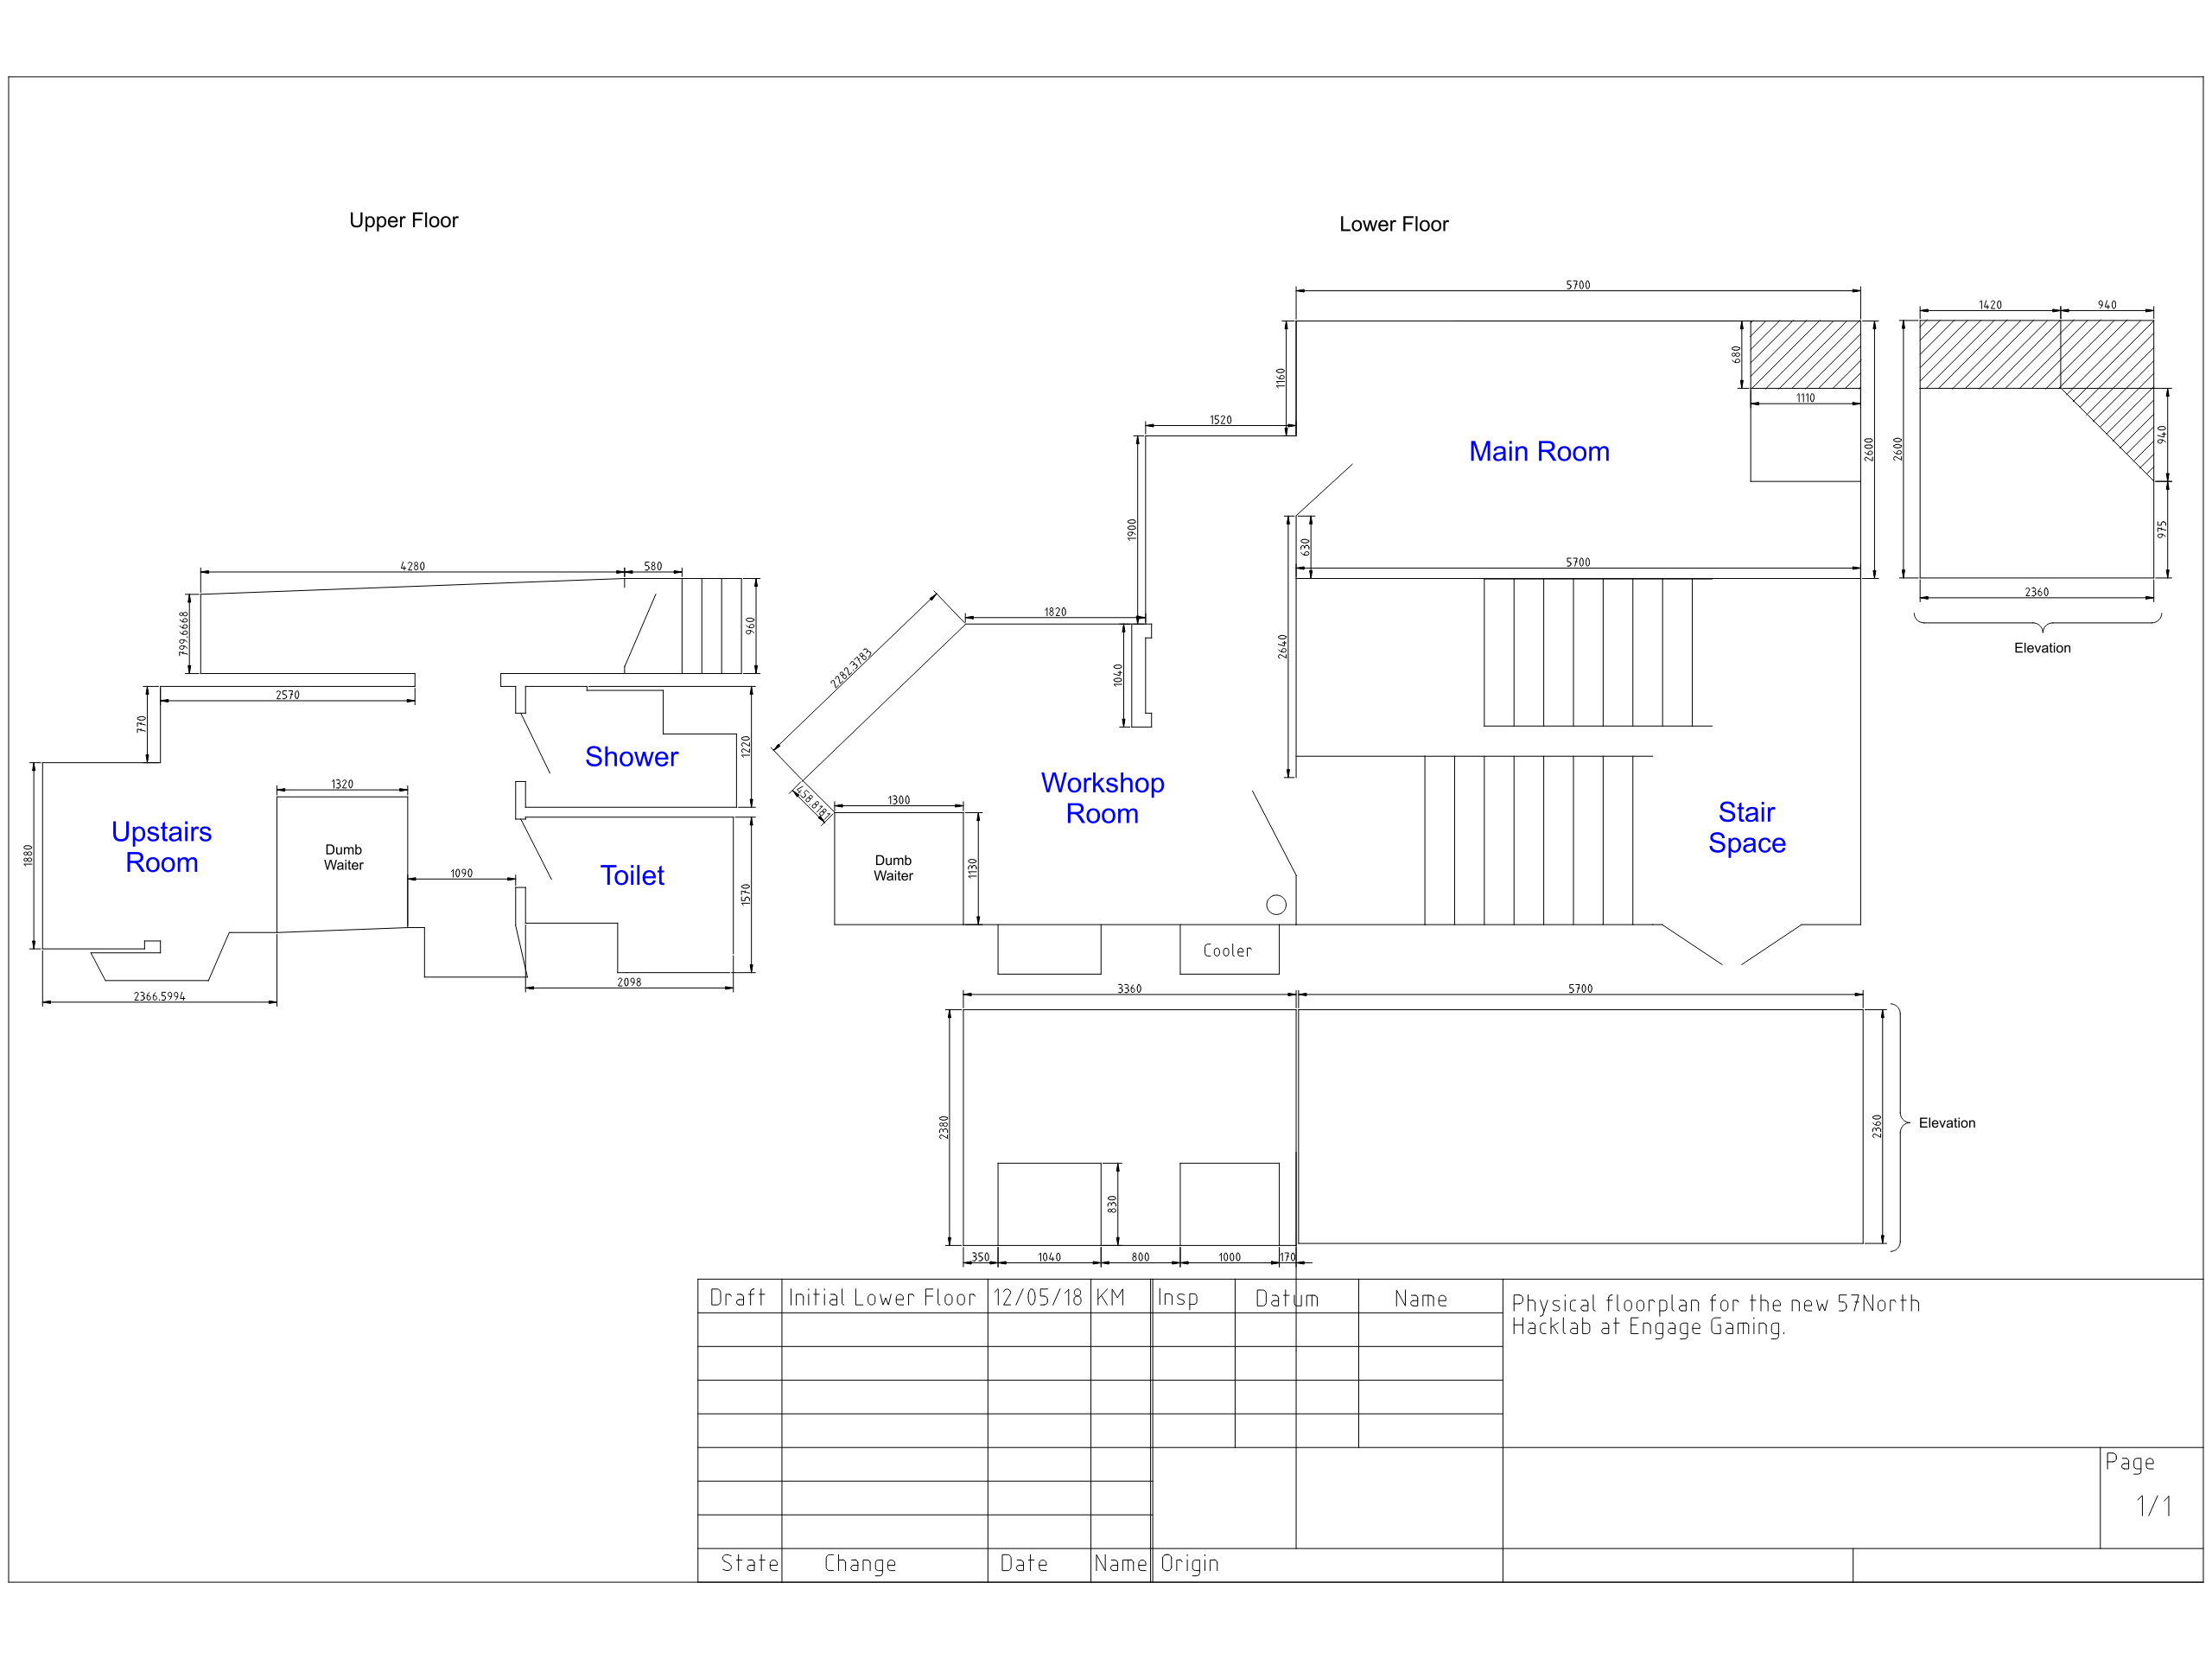 file:floorplan-01.png